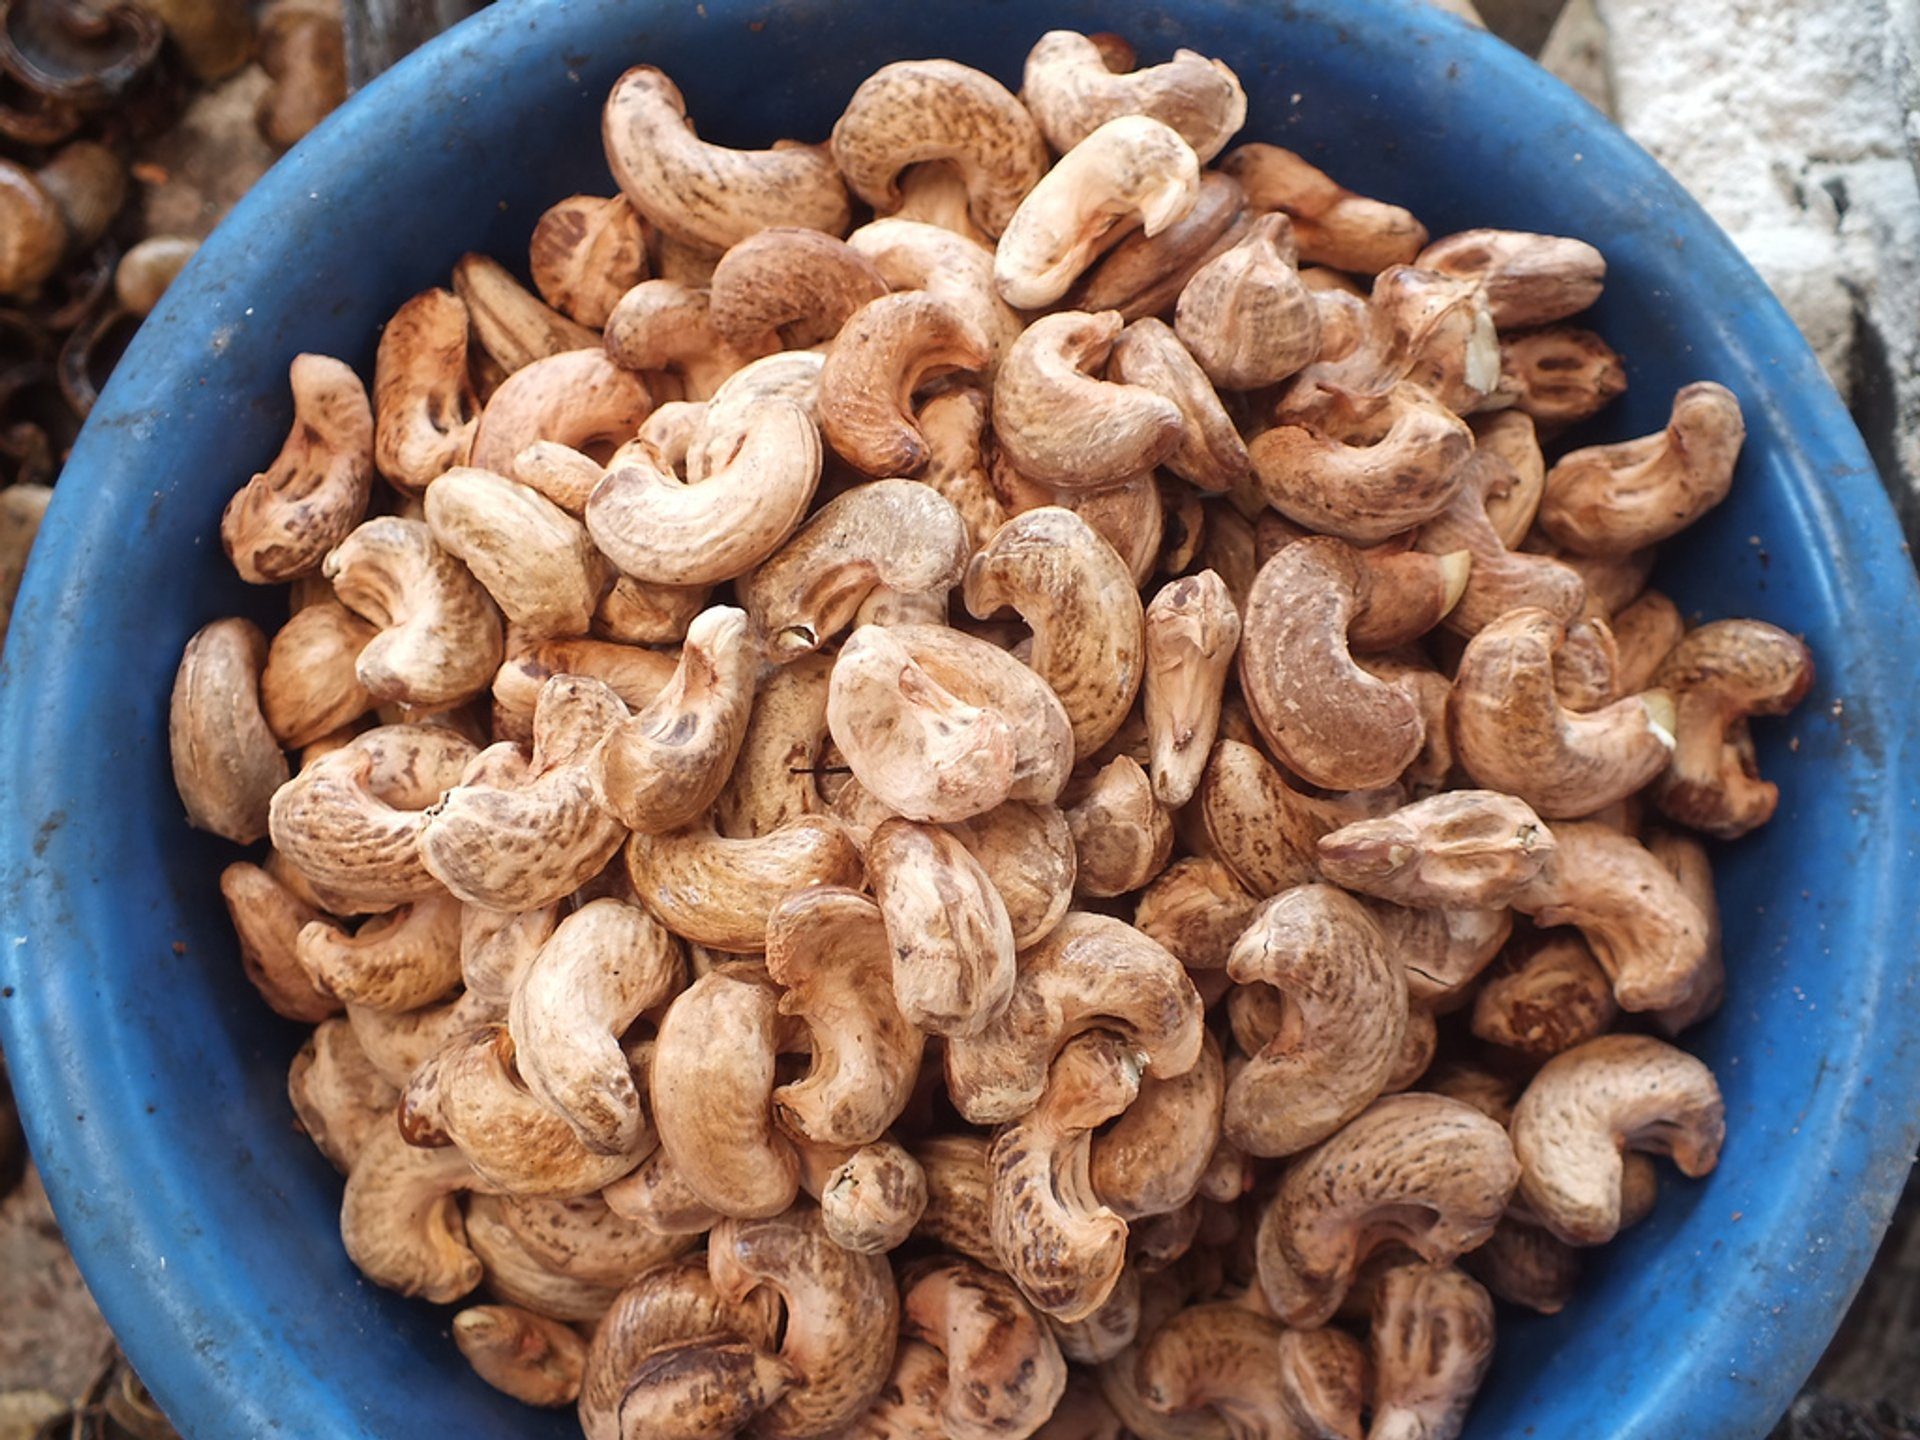 Cashew in Zanzibar - Best Season 2020